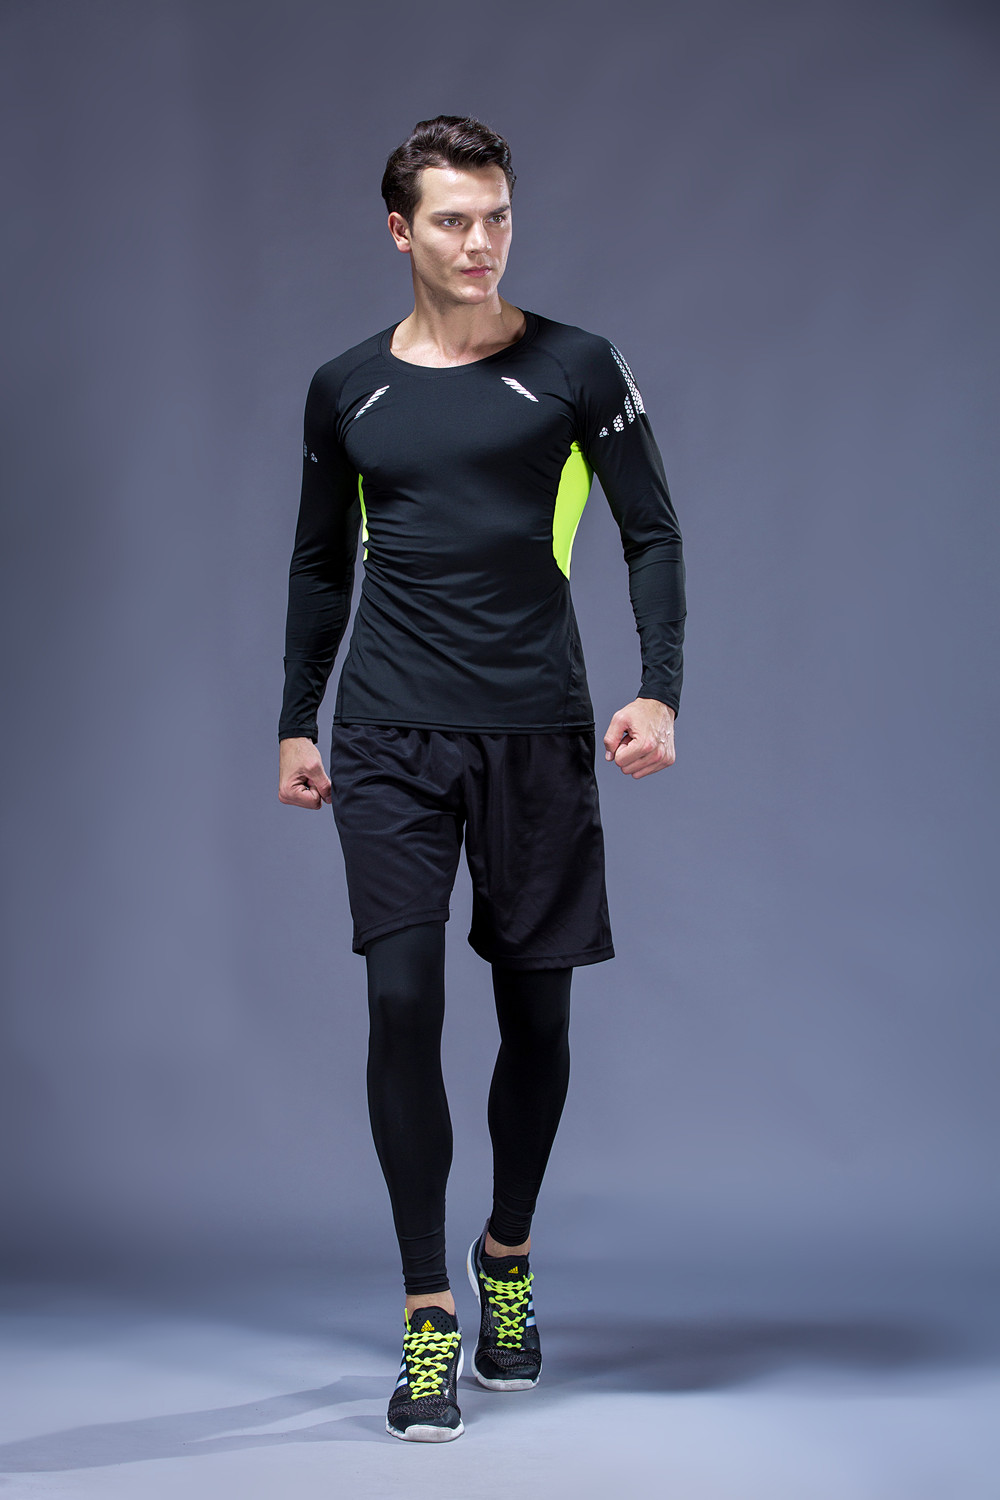 Foto from the front 5 pcs compressions clothes for gym. Men's 5 pcs compression tracksuit sports